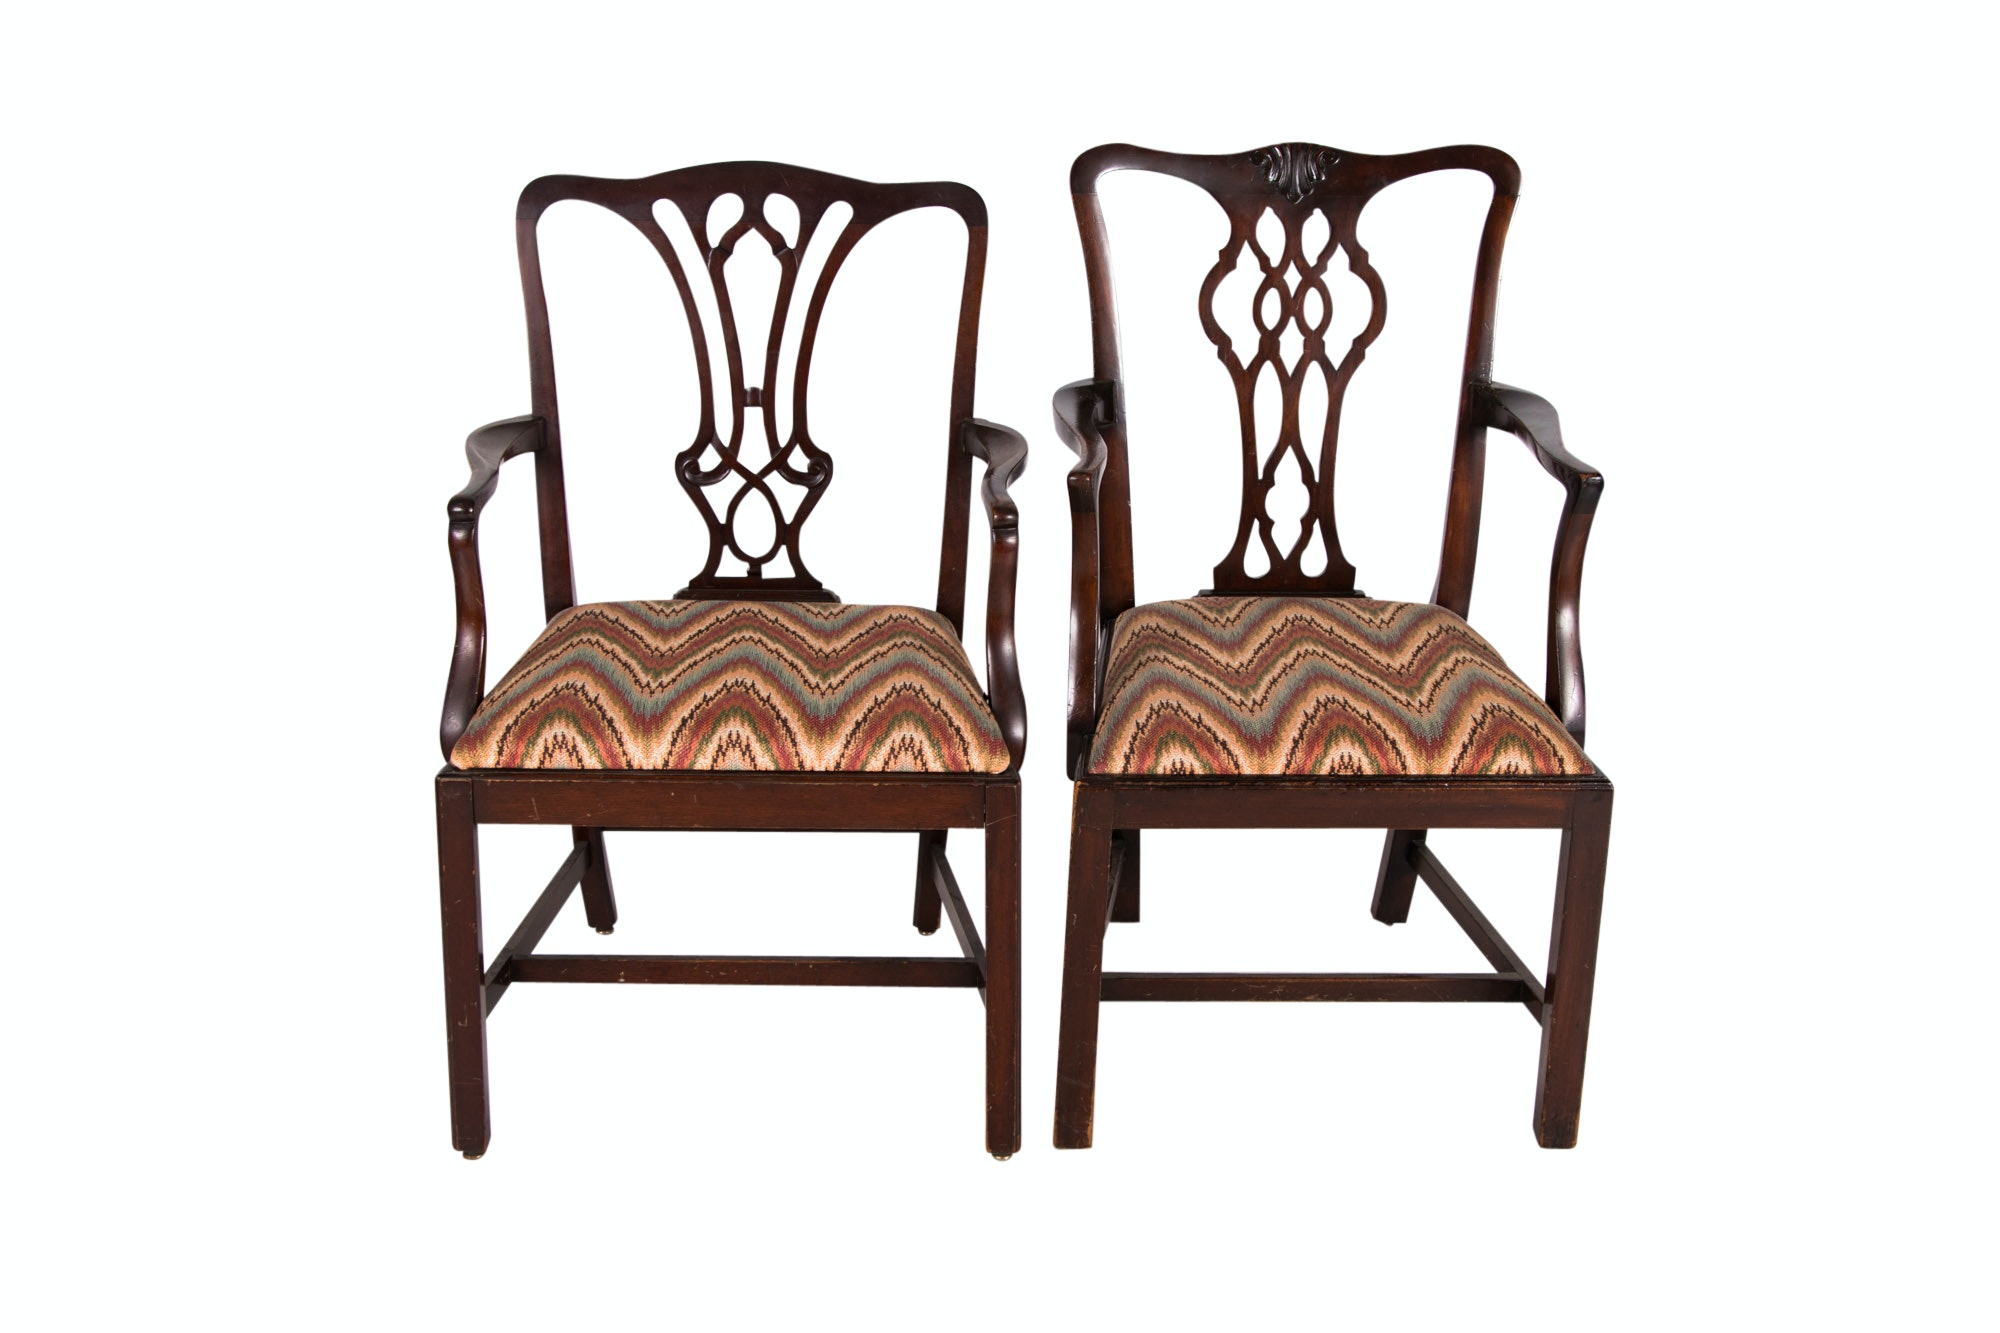 Two George III Style Mahogany Open Armchairs, One by Hathaway's NY, 20th Century